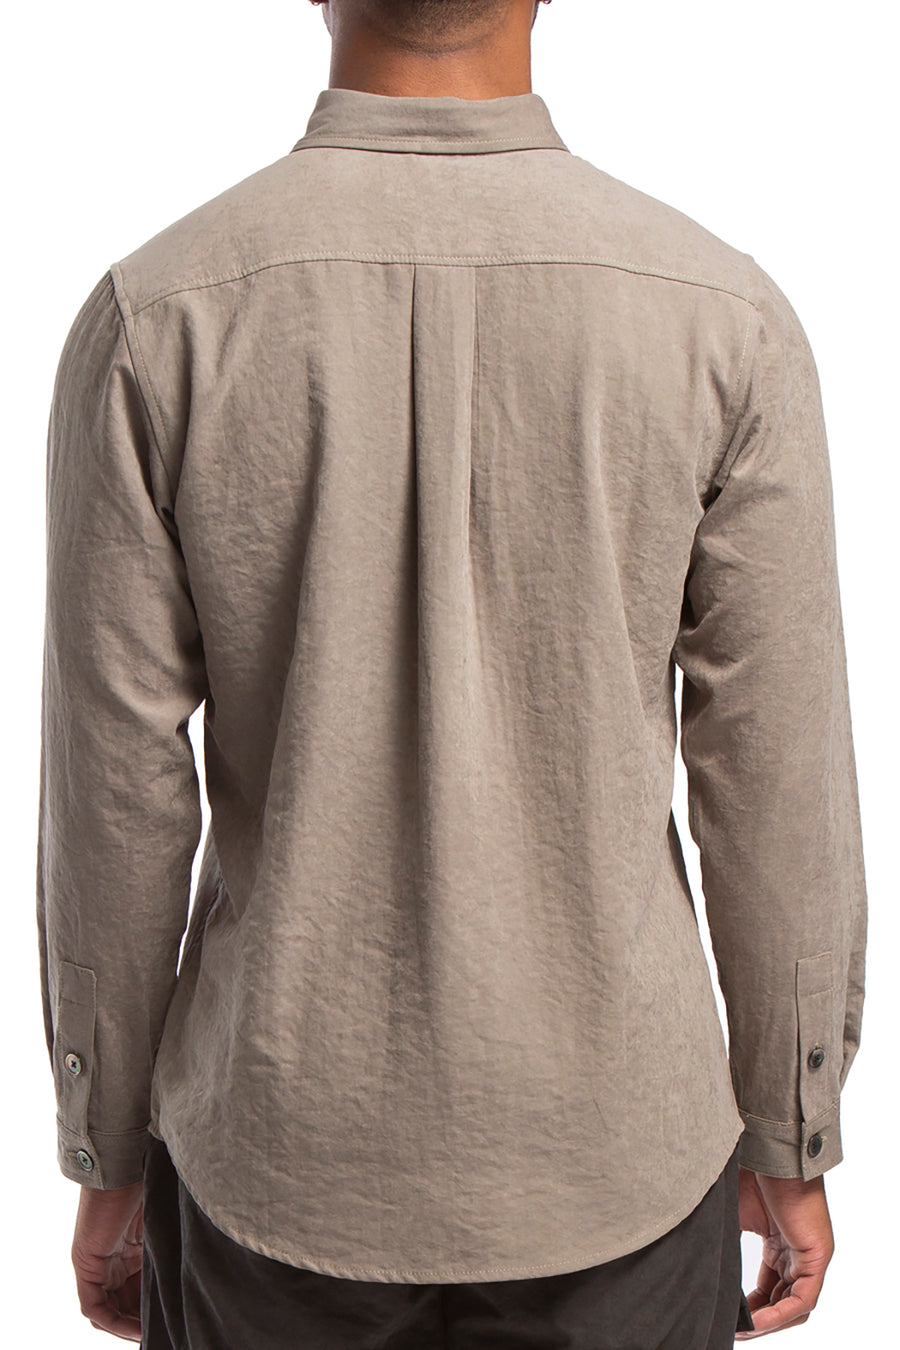 Mesquit Buttondown, Tan Olive